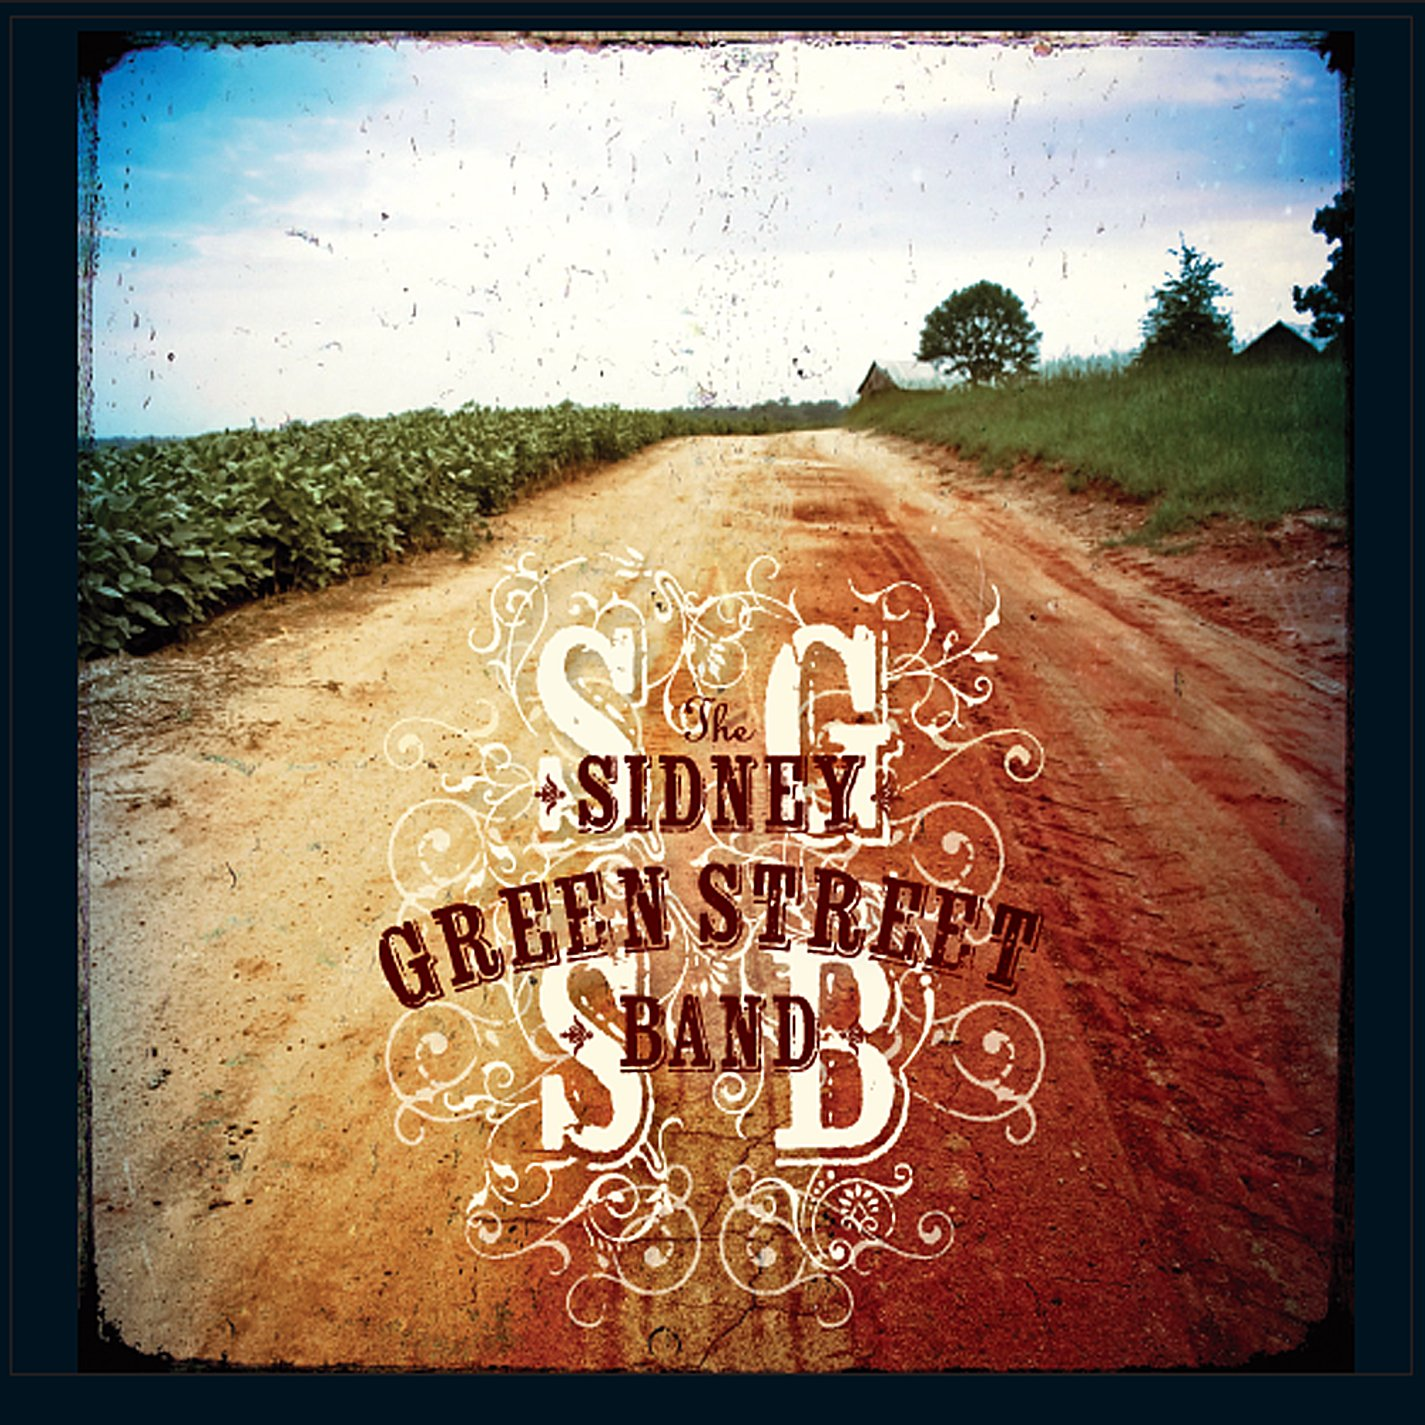 CD : Sidney Green - Sgsb (CD)